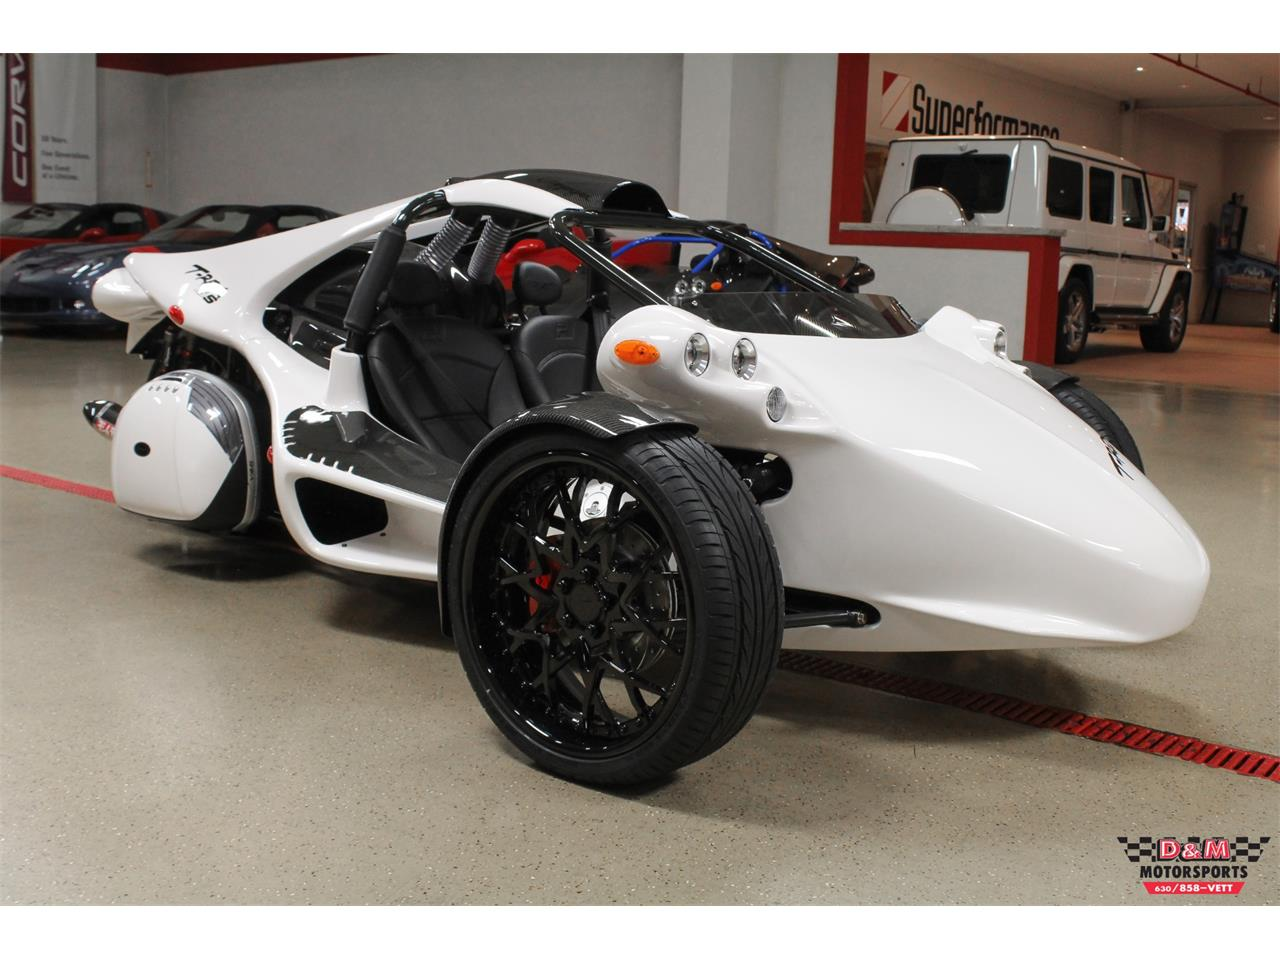 Large Picture of 2018 Campagna T-Rex located in Illinois Auction Vehicle Offered by D & M Motorsports - PCCJ